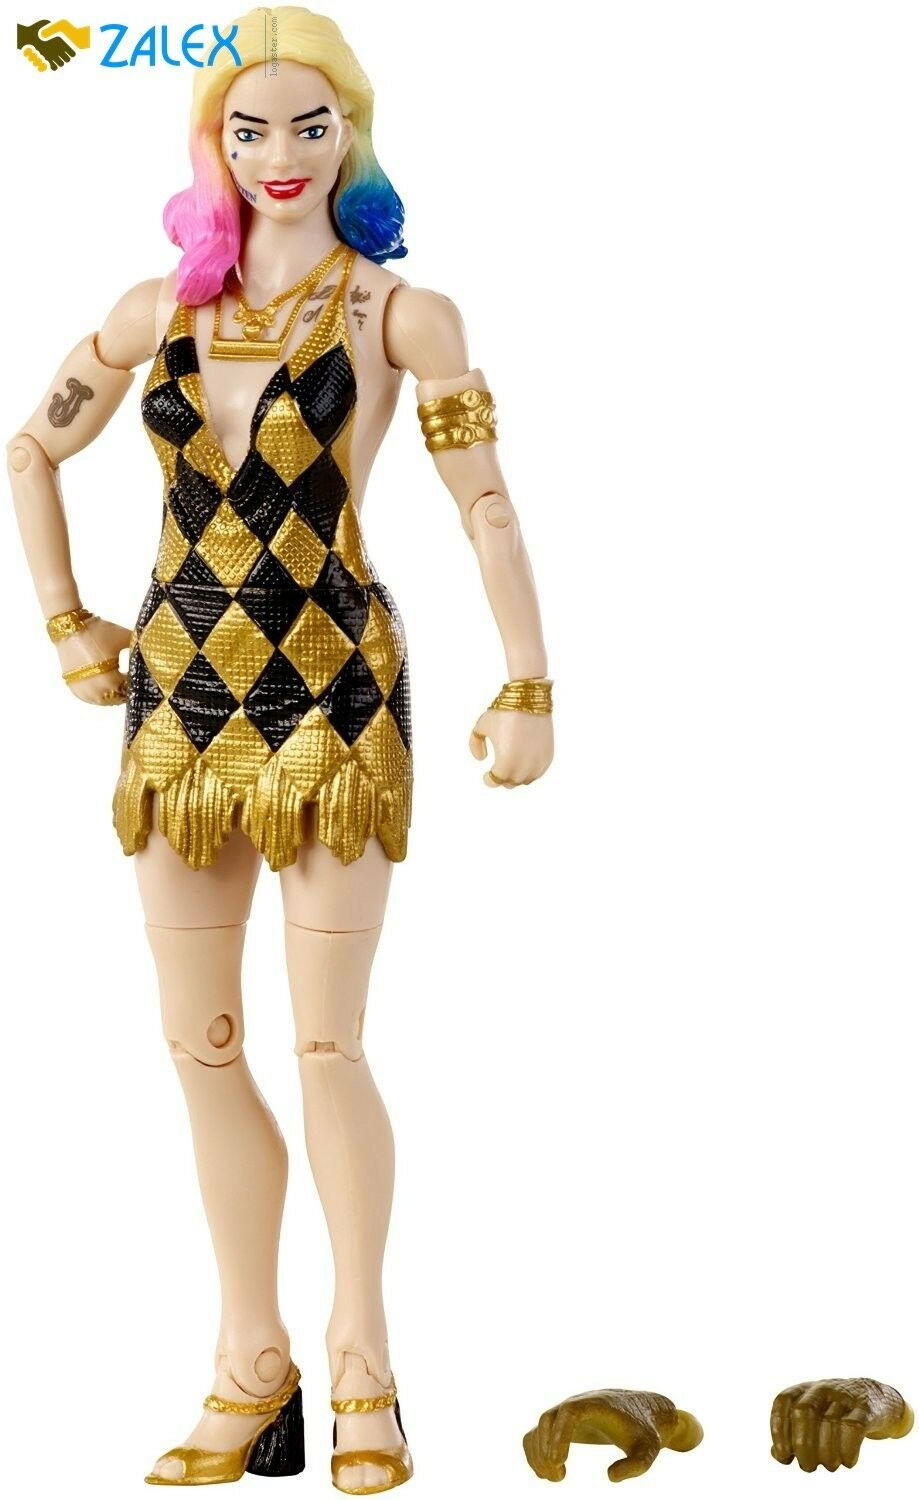 DC Comics Multiverse Multiverse Multiverse Suicide Squad 6 Action Figure Harley Quinn By Mattel New 81a213